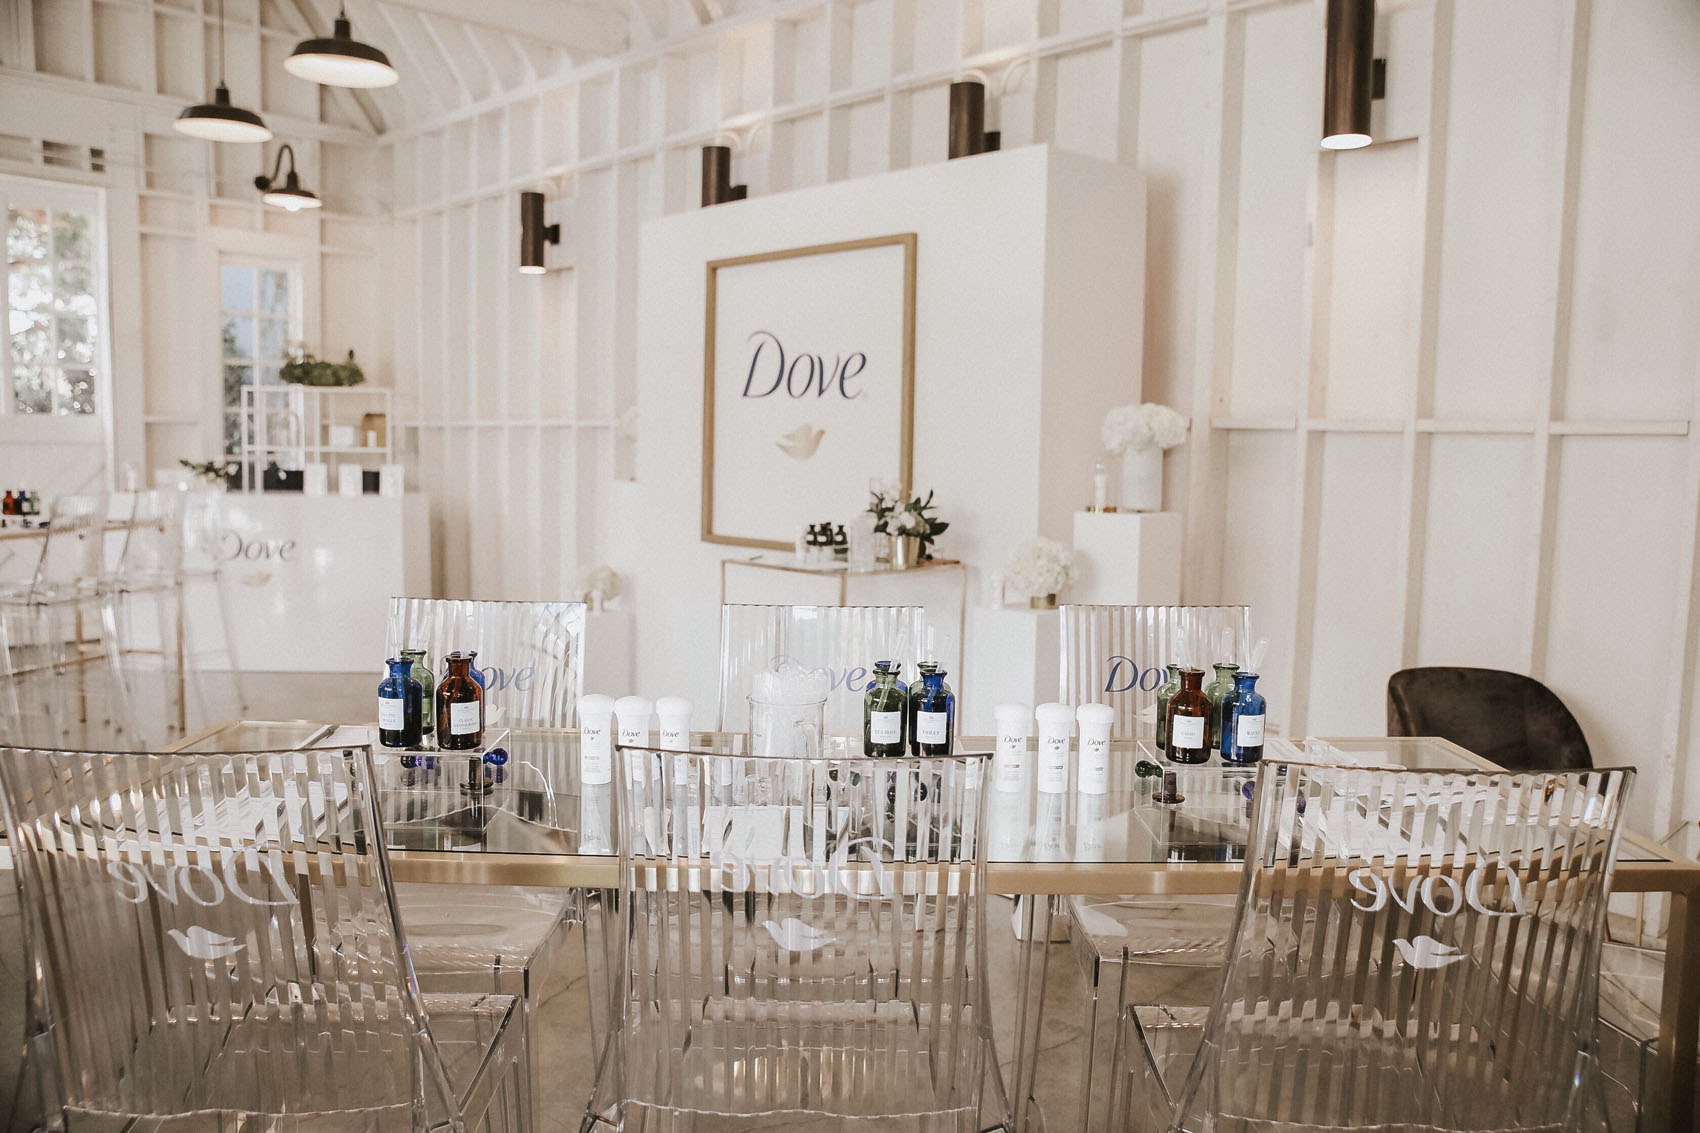 Dove Event at The Lombardi House